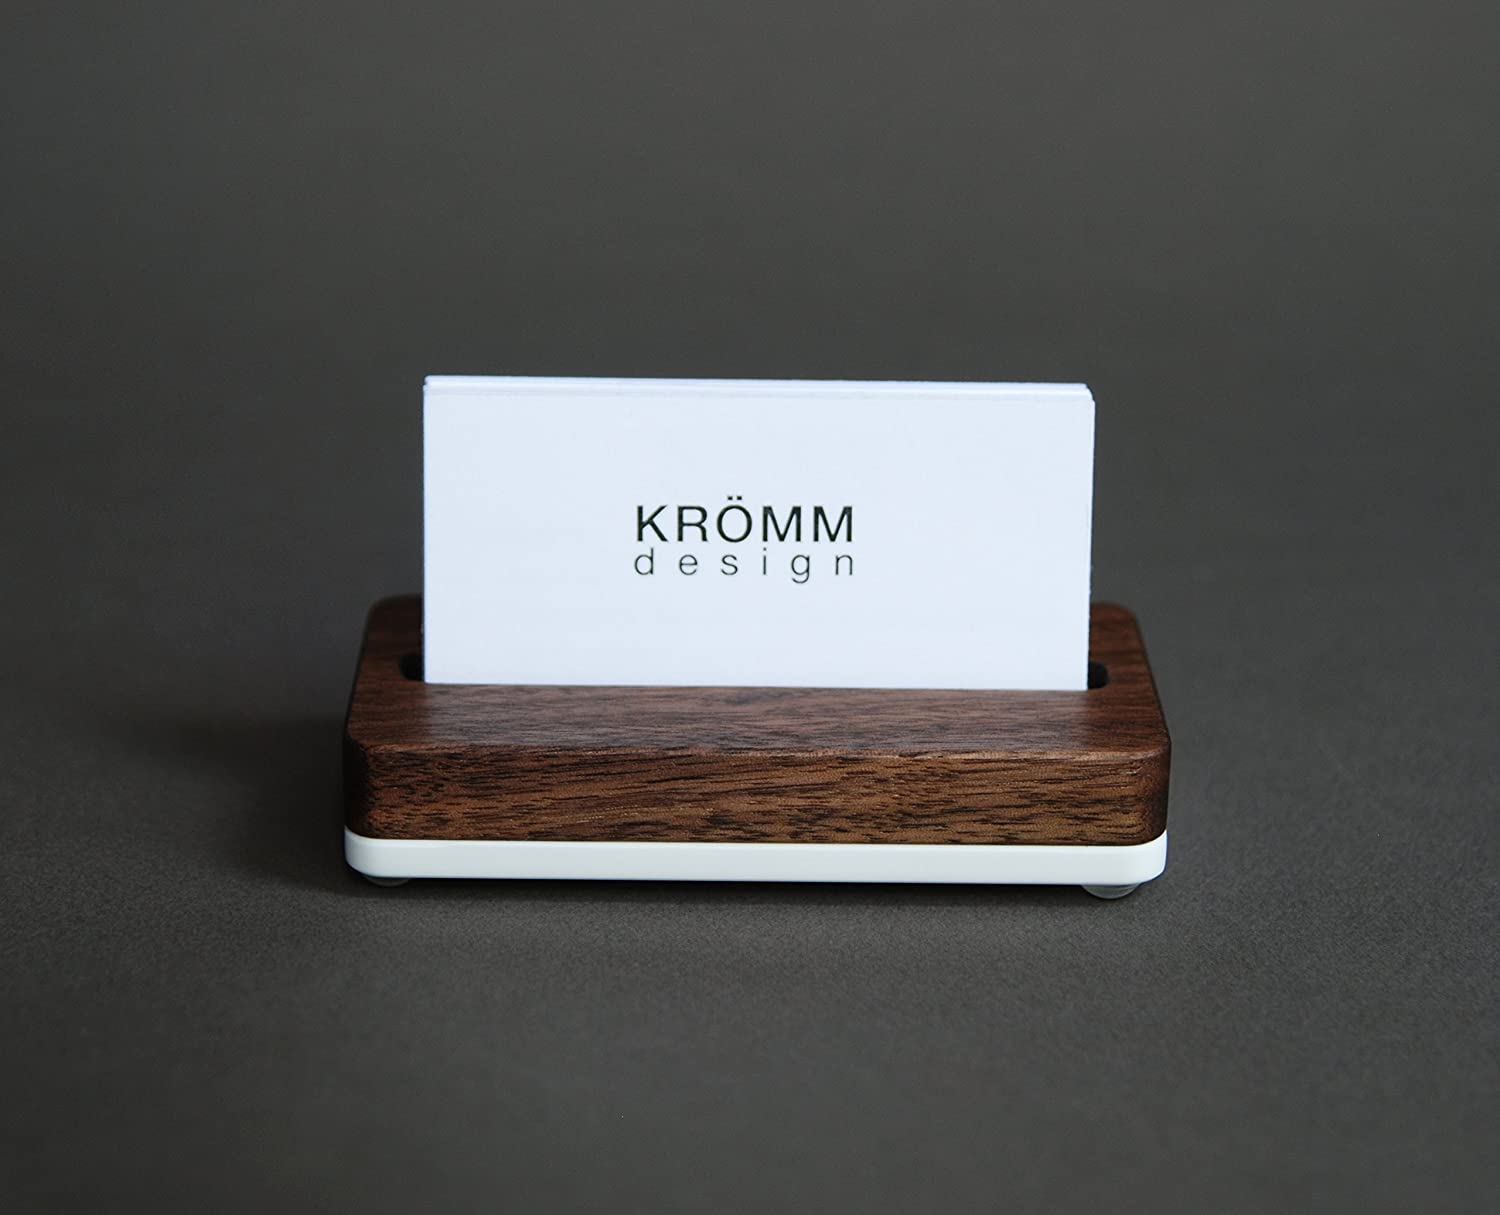 Amazon vertical moo business card stand vertical business card amazon vertical moo business card stand vertical business card holder business card display for vertical business cards in walnut wood and white reheart Choice Image